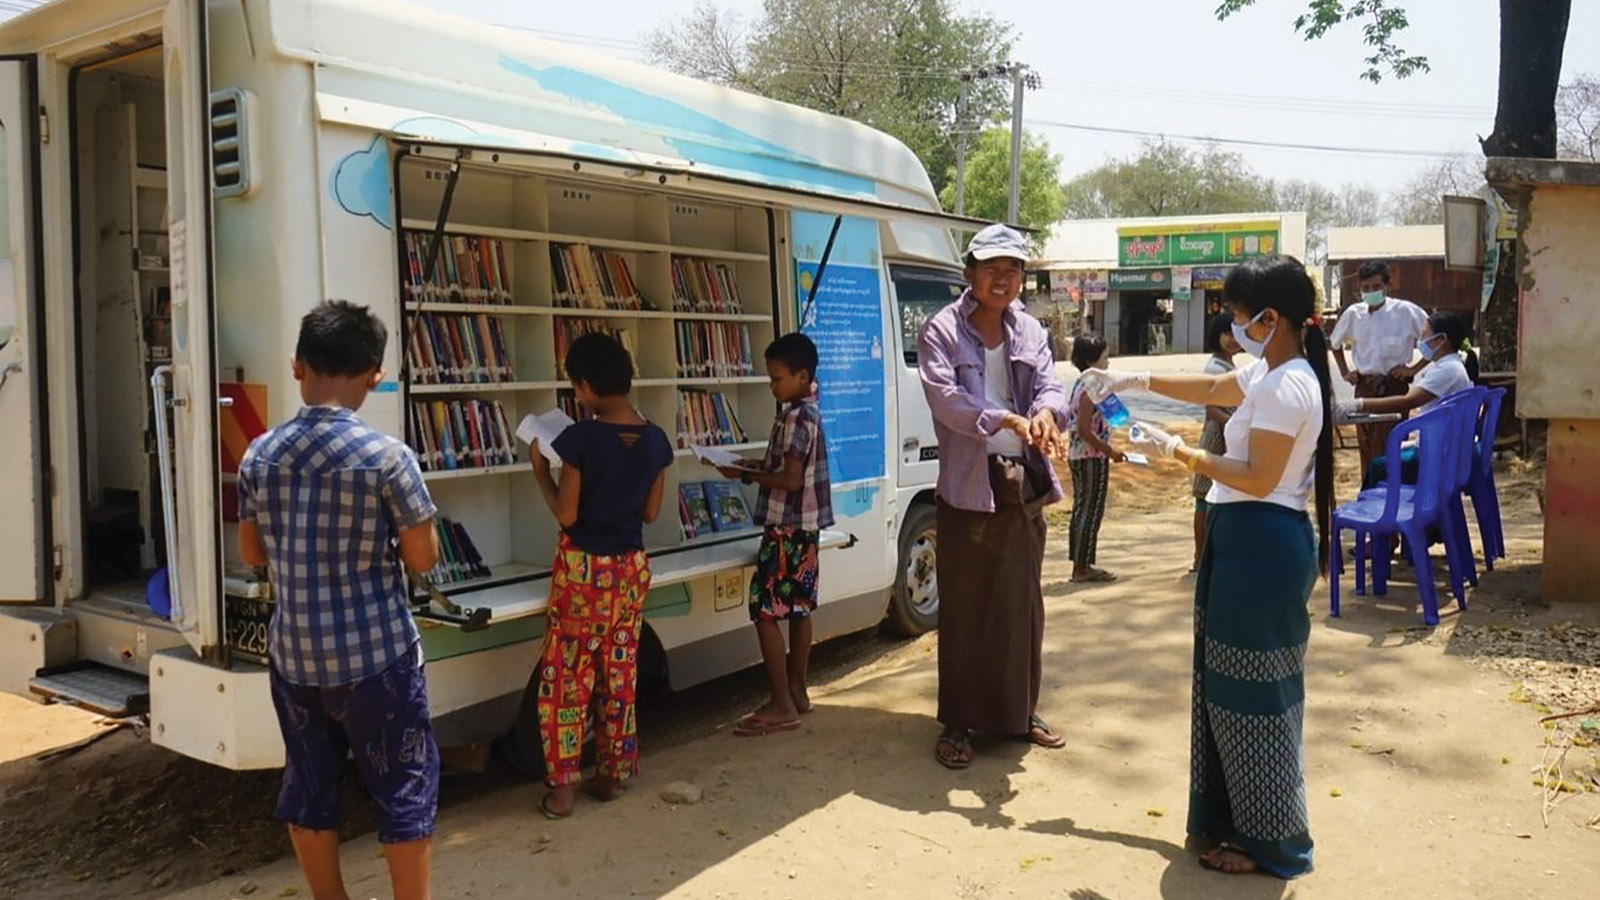 Officials demonstrate proper use of hand sanitizers, distribute pamphlets on COVID-19 and pass awareness on COVID-19 along with reading materials rental service from mobile libraries in Kwyel Min Kya Village, Natmauk Township.  photo: Thein Naing (IPRD)